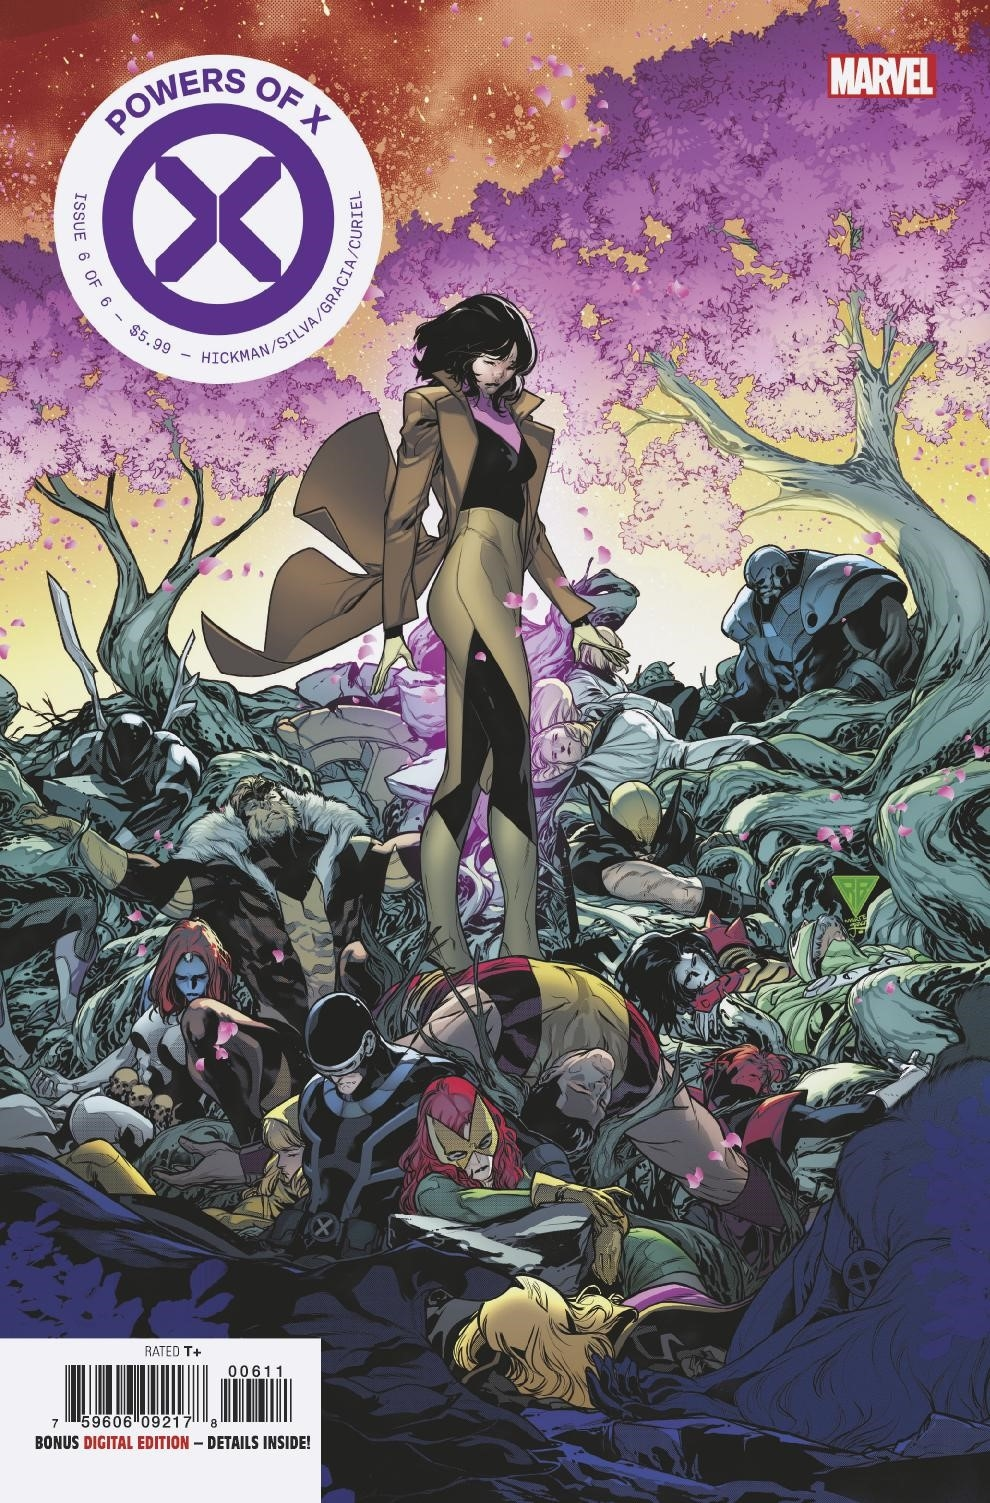 The Marvel Rundown: POWERS OF X #6 concludes Jonathan Hickman's X-Men relaunch